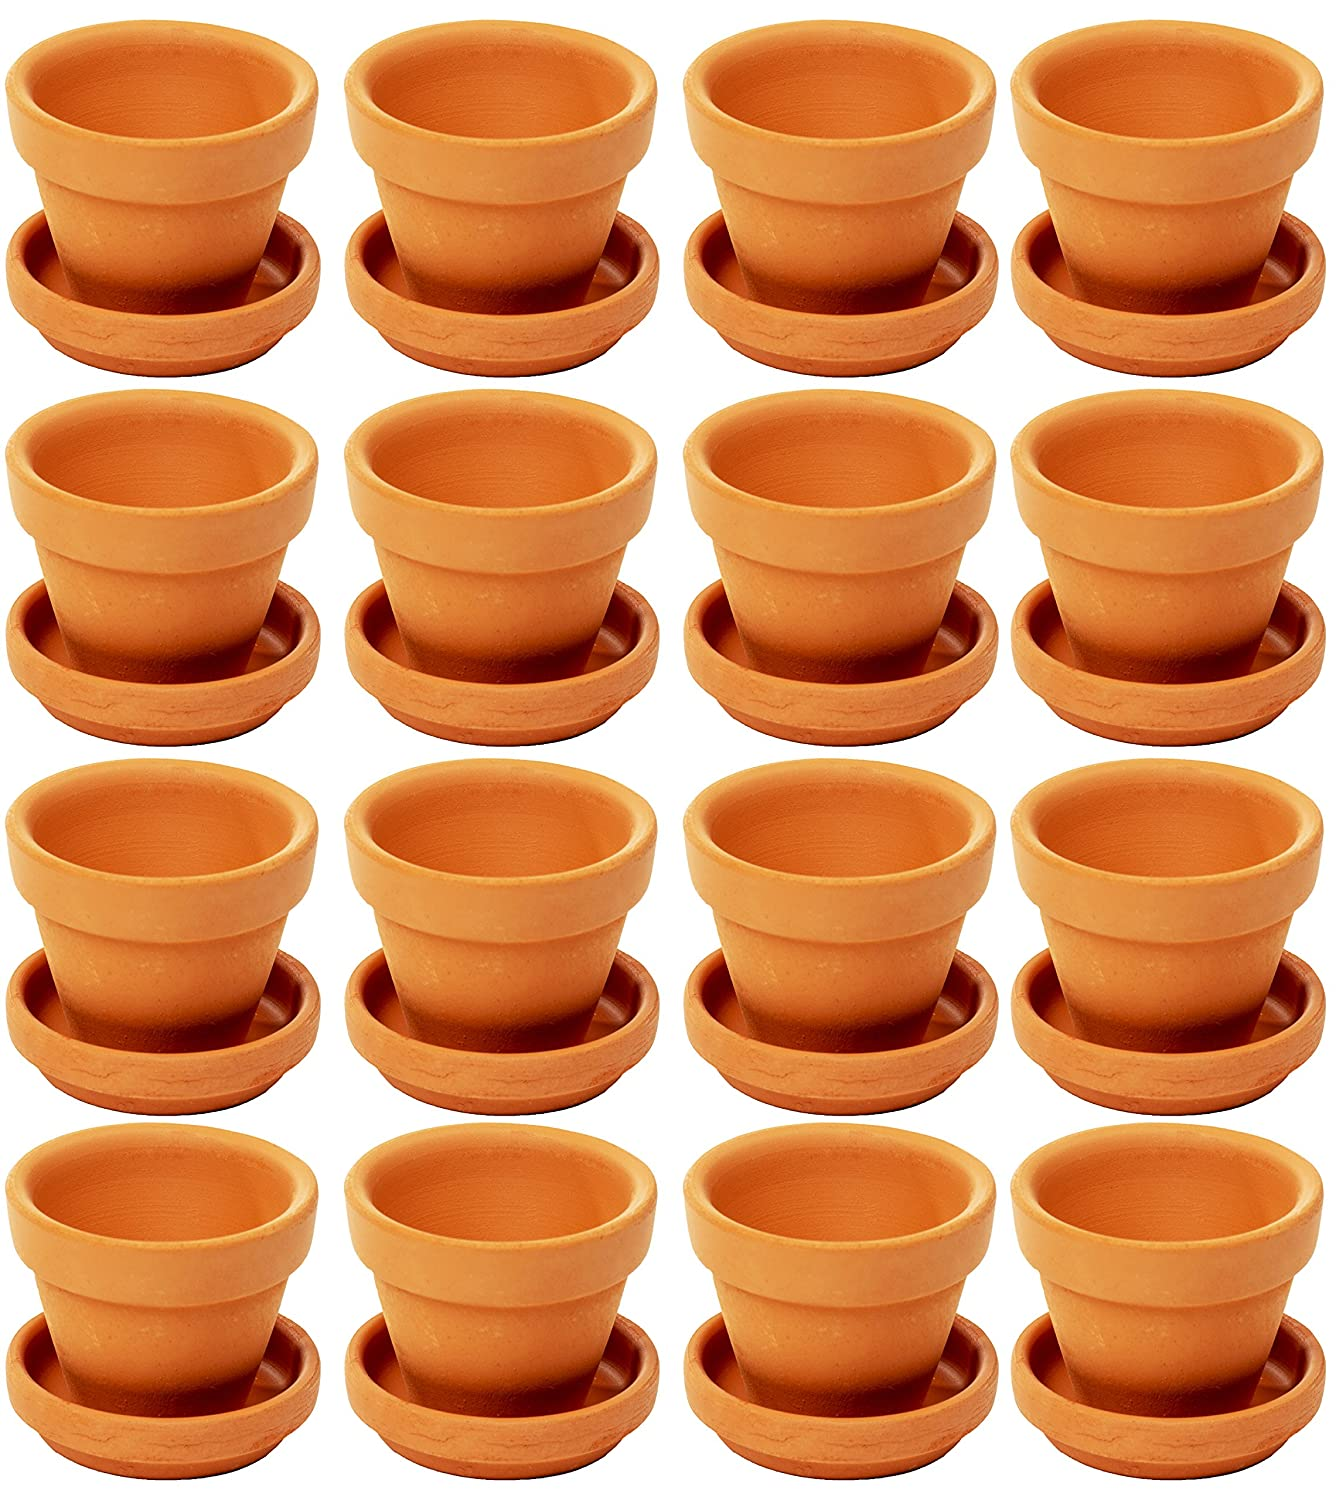 Small Terra Cotta Pots with Saucer- 16-Pack Clay Flower Pots with Saucers, Mini Flower Pot Planters for Indoor, Outdoor Plant, Succulent Display, Brown - 2.2 x 1.9 inches